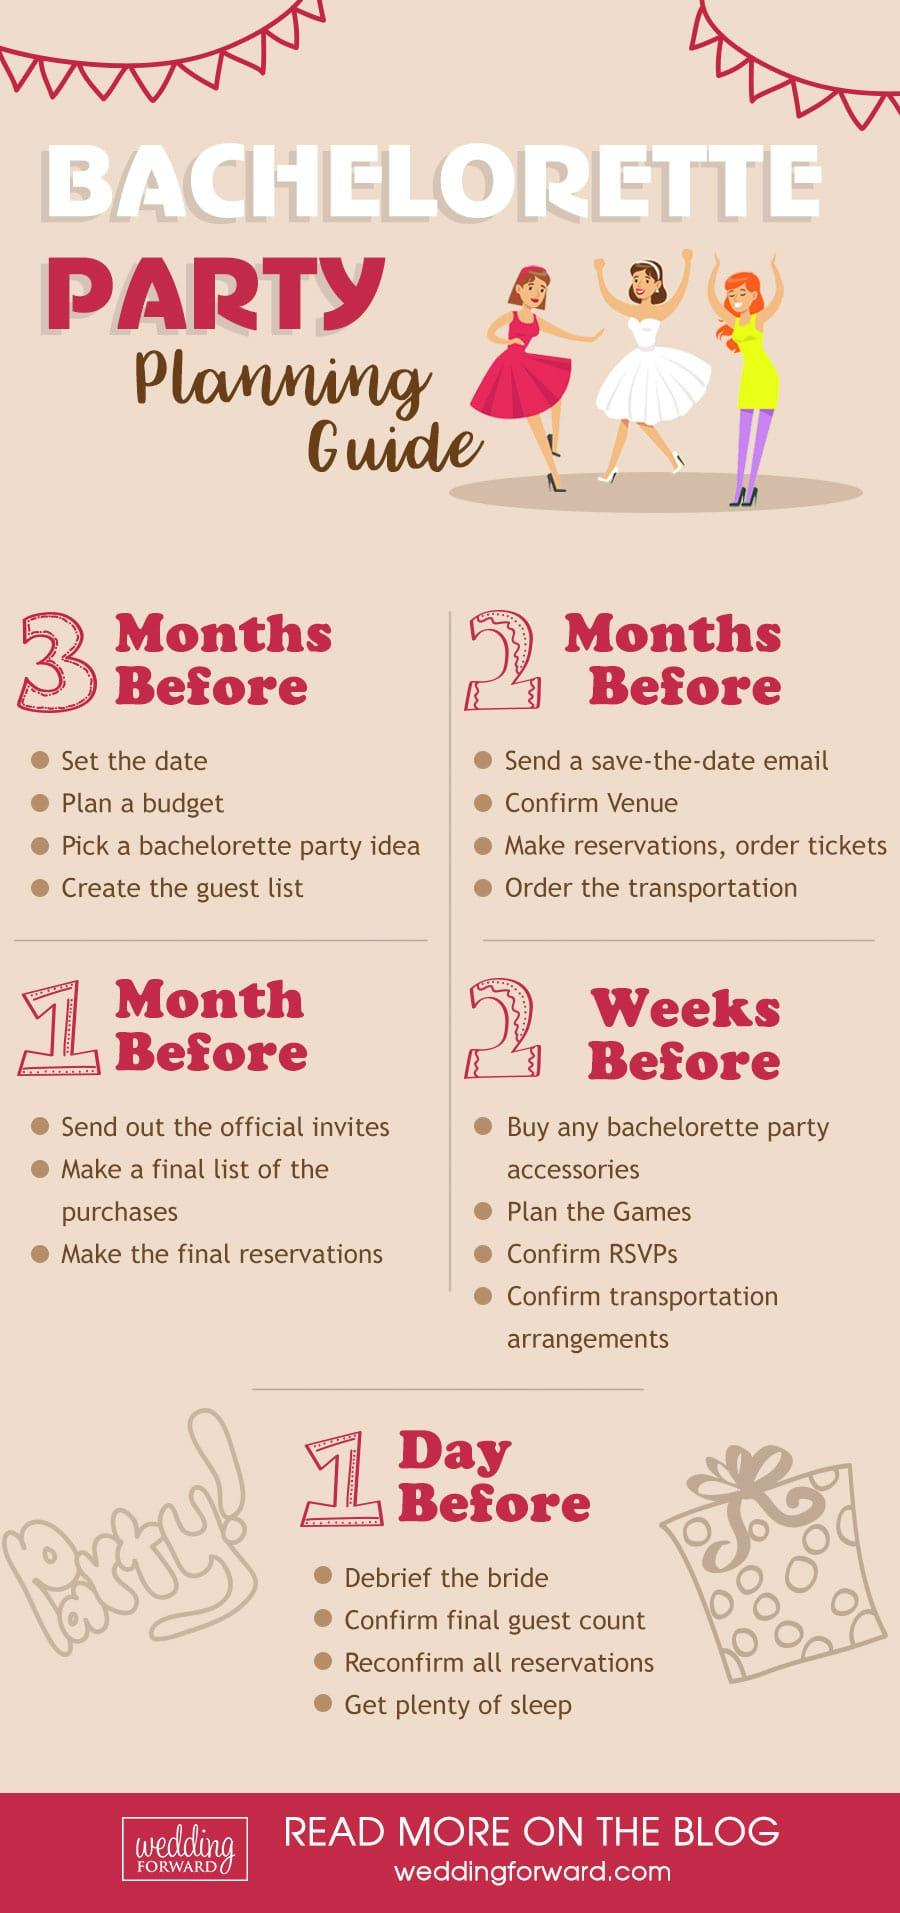 infographic bachelorette party planning guide 3 months before